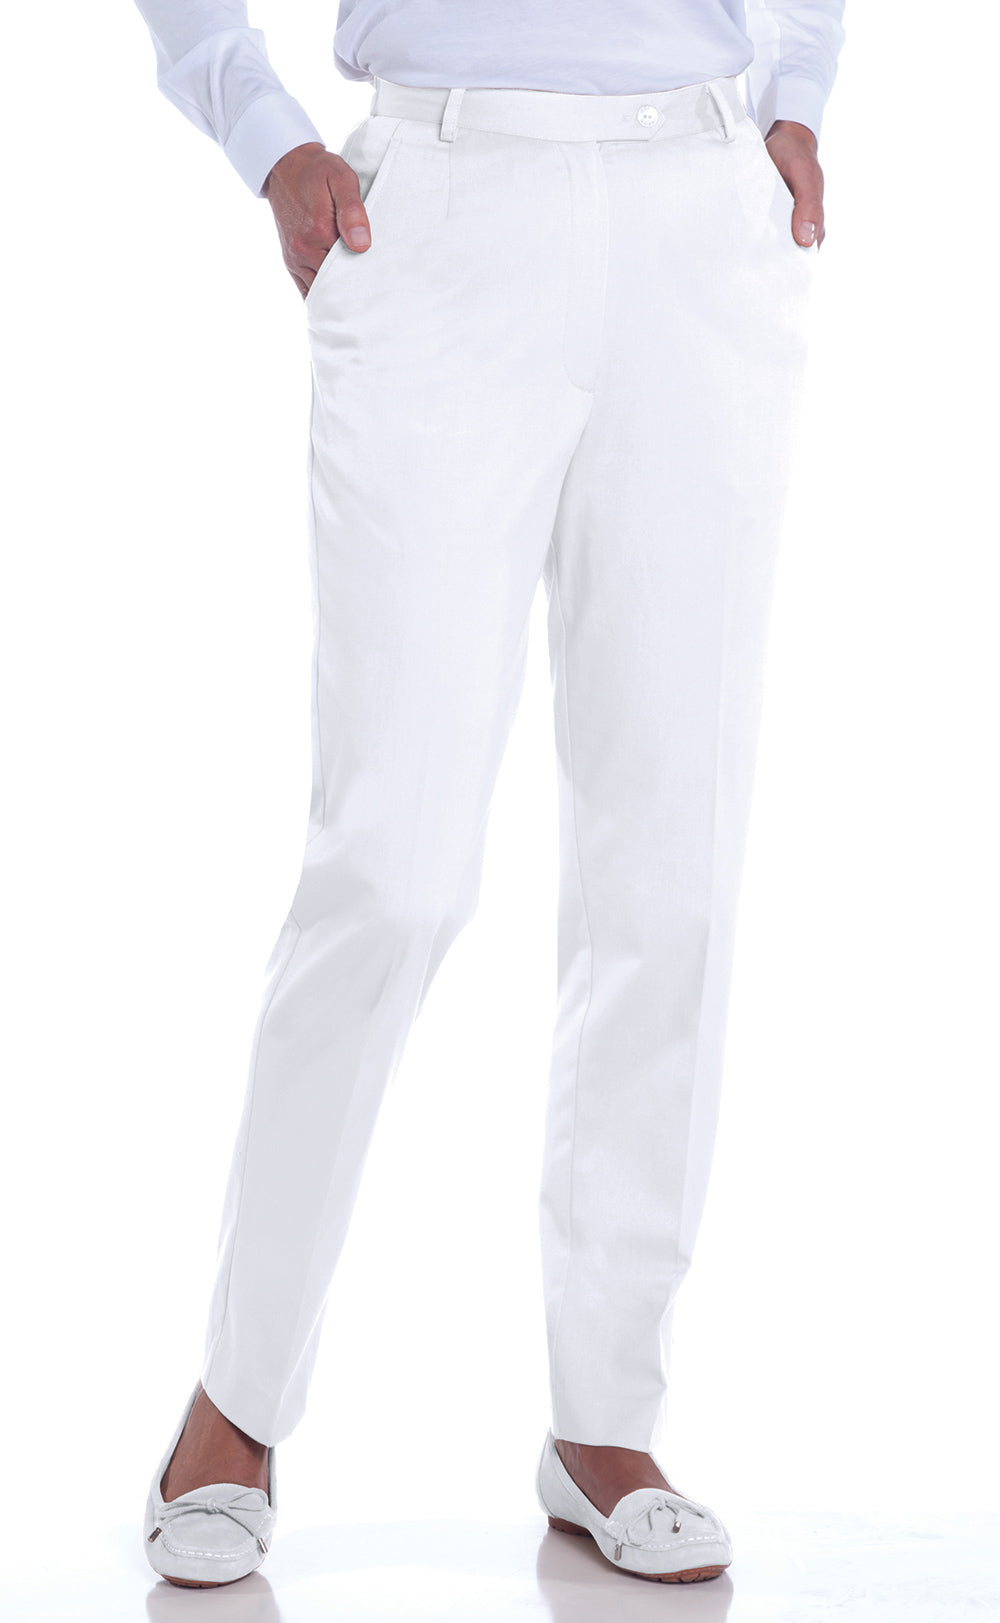 Petite Stretch Twill Flat Front Pant | White_000 - Leonlevin